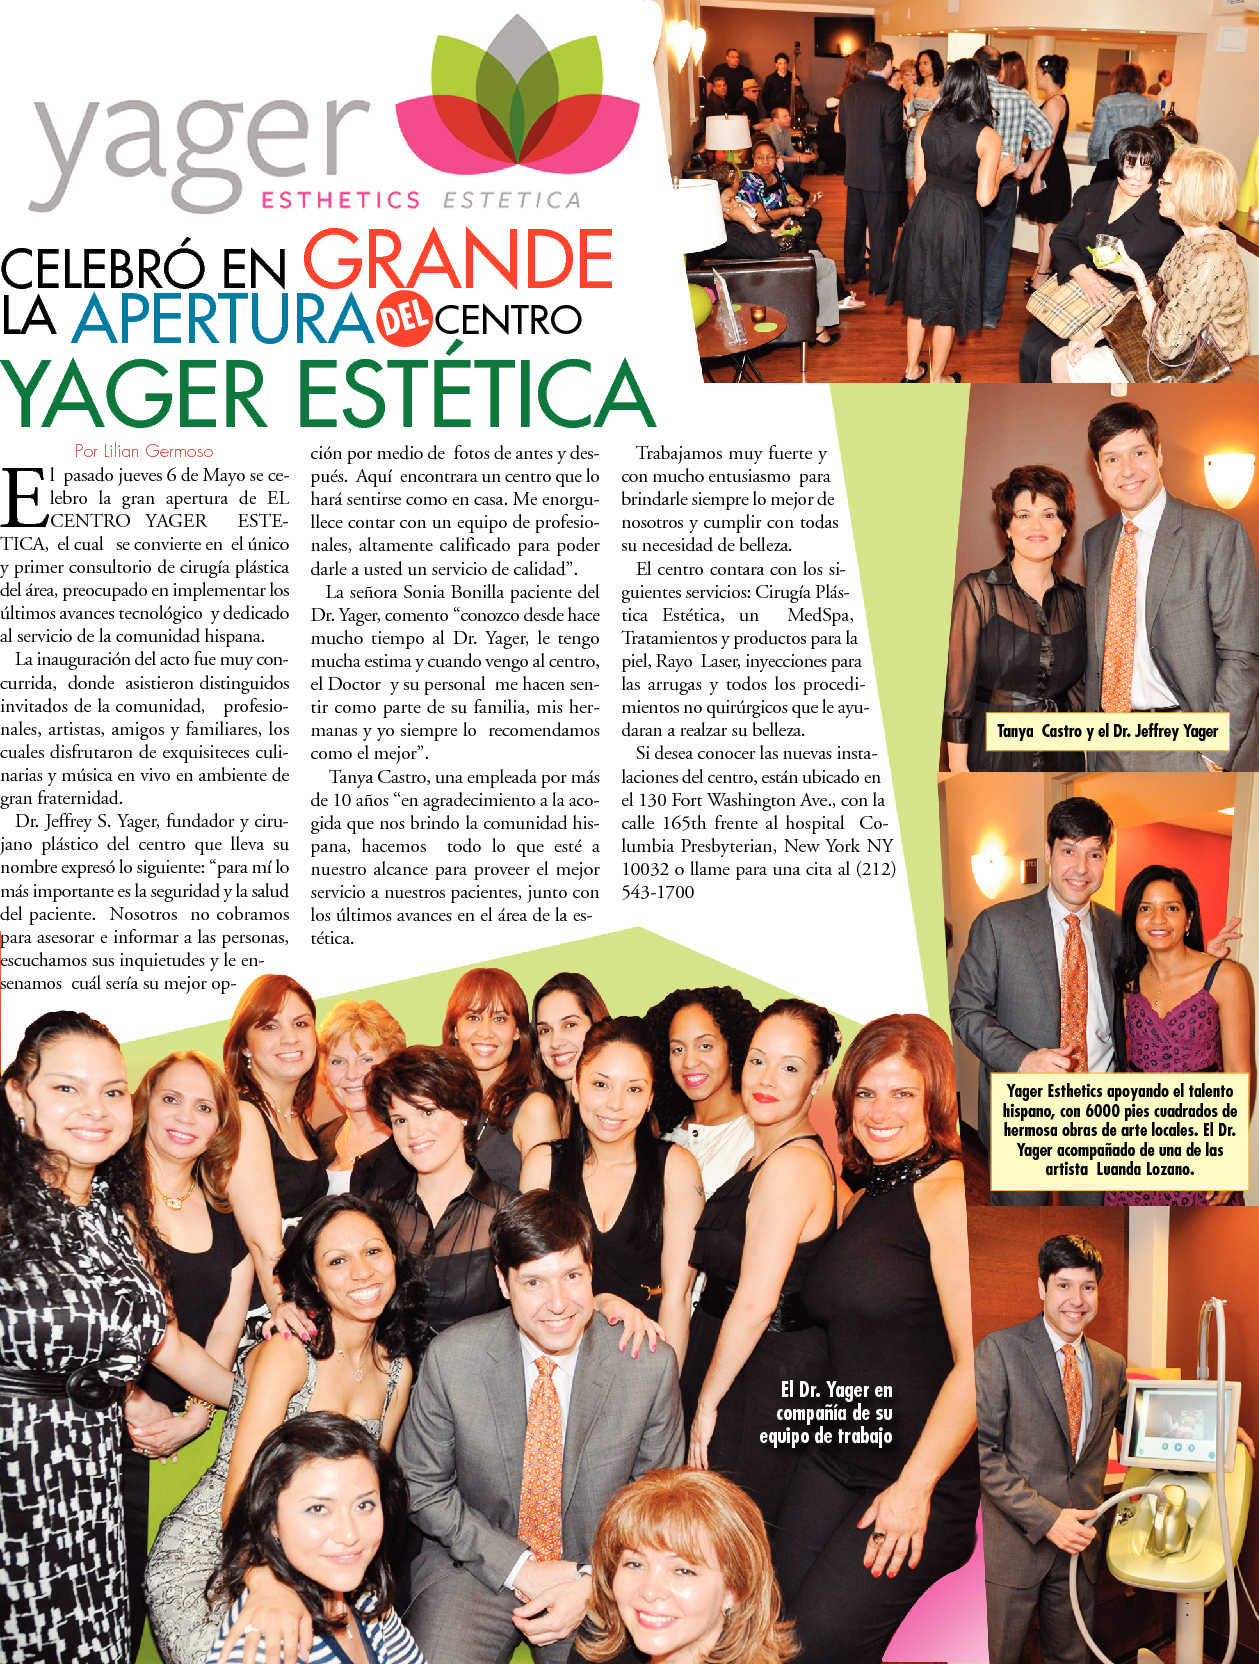 REVISTAS Y PUBLICACIONES: Celebrating the new Yager Esthetics | Estética™ Office